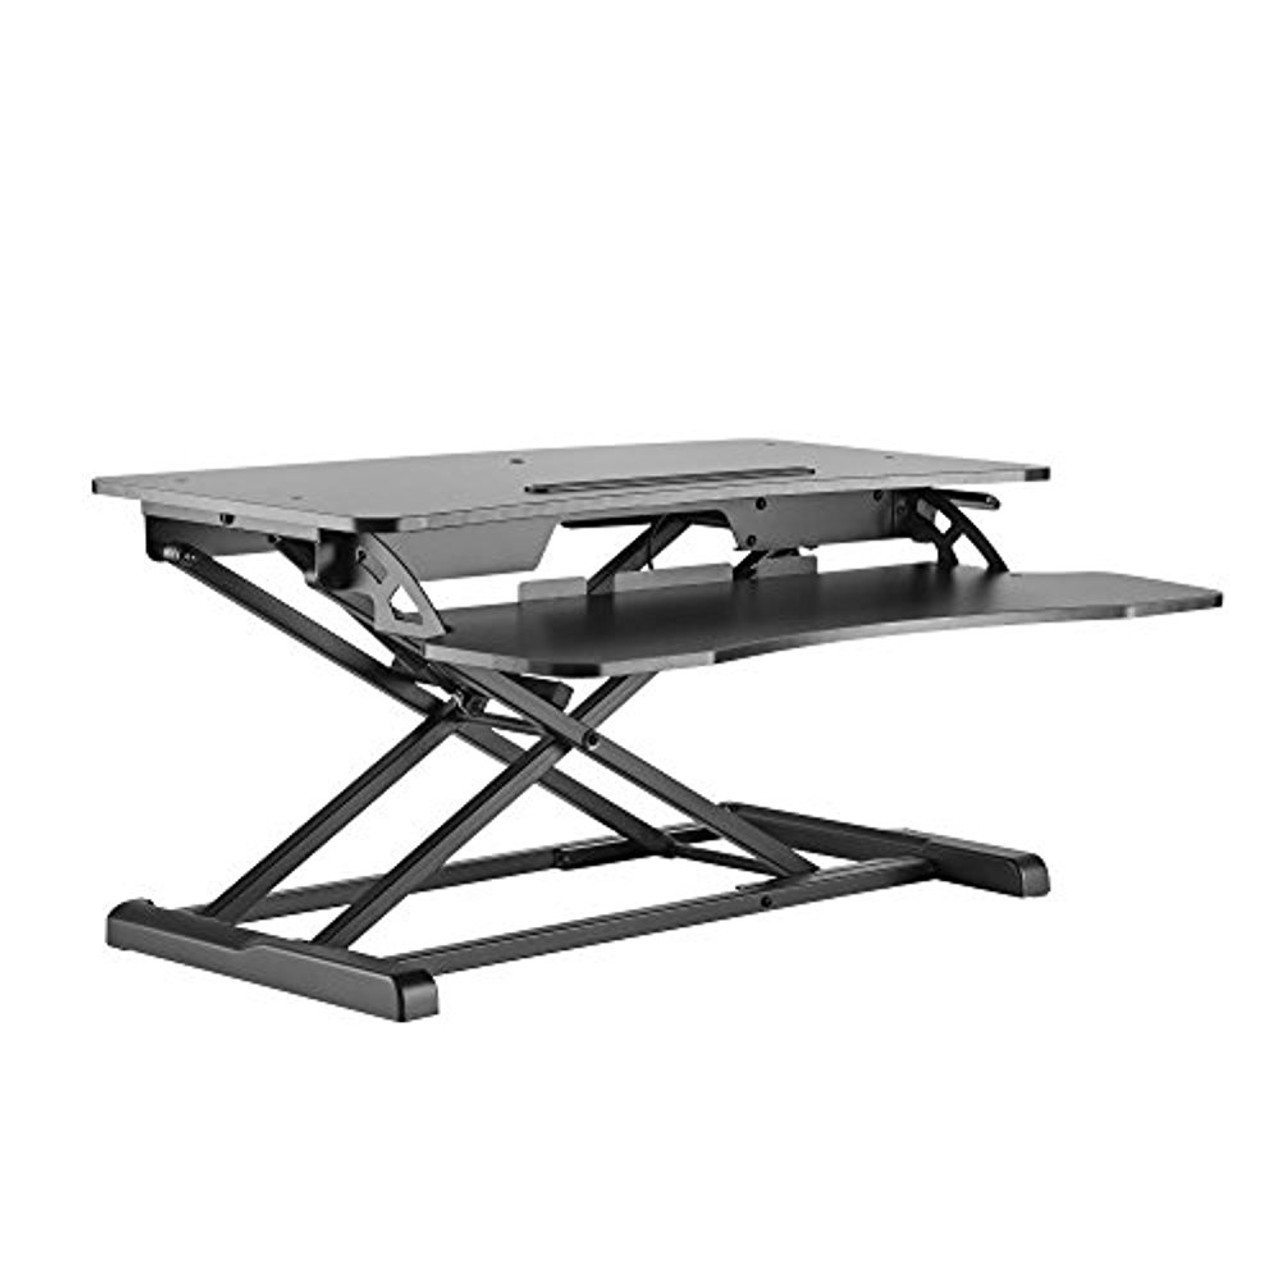 Pyle Ergonomic Standing Desk & PC Monitor Riser - Height Adjustable Laptop  & Computer Table w/ Wide Keyboard Tray - Black Sit & Stand Desktop